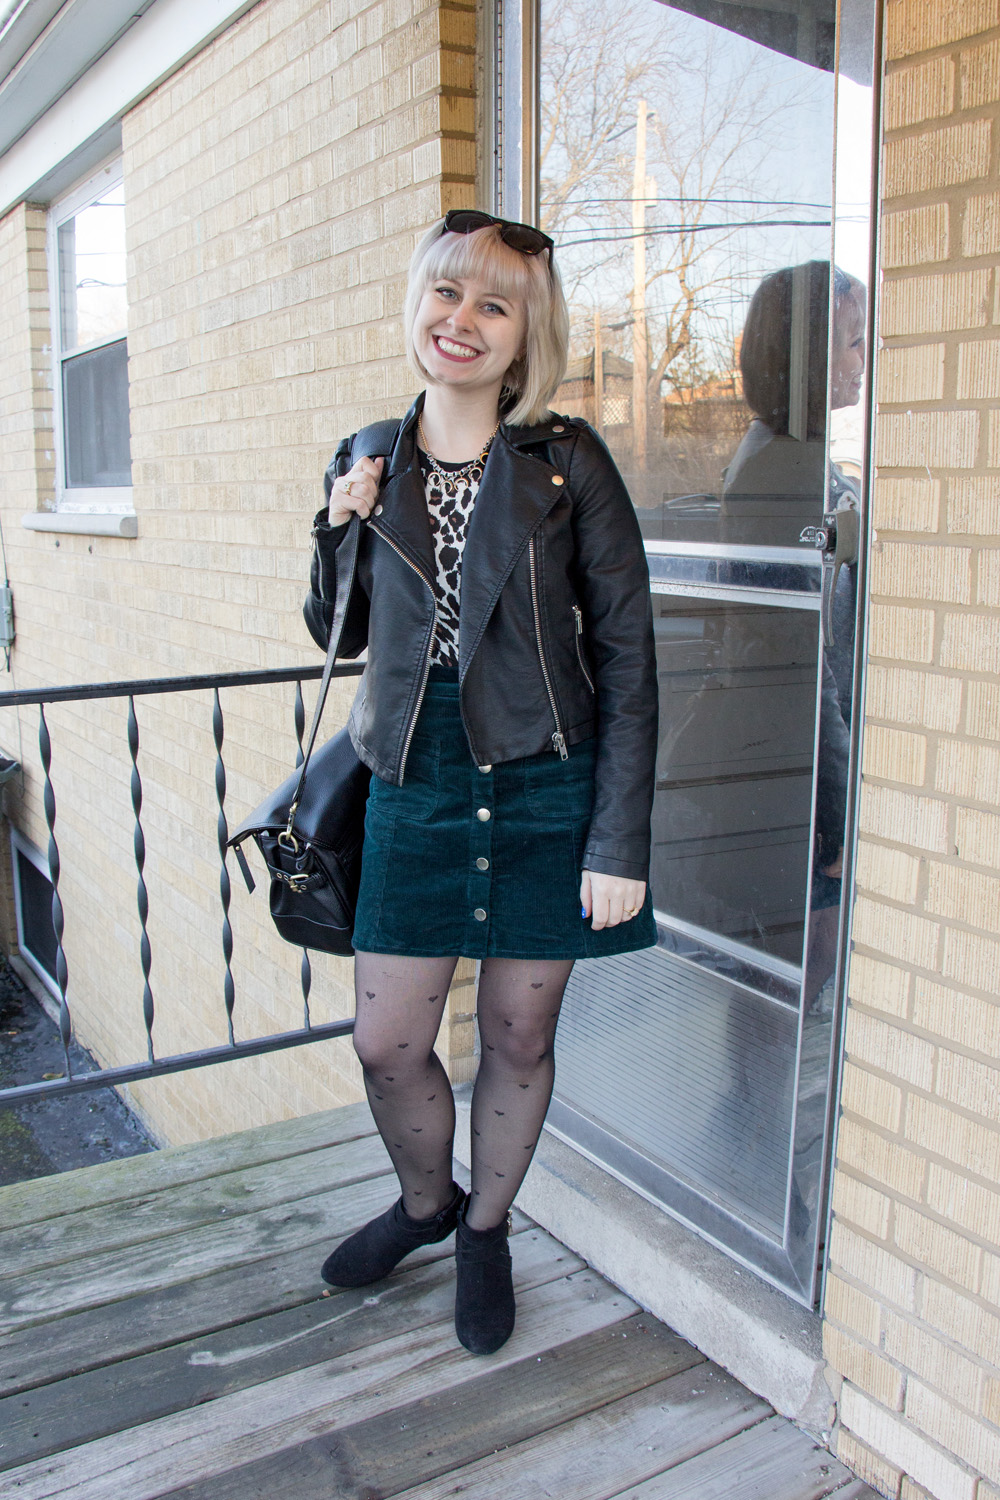 Green Corduroy H&M Skirt, Heart Tights, Leopard Tee, Leather Jacket